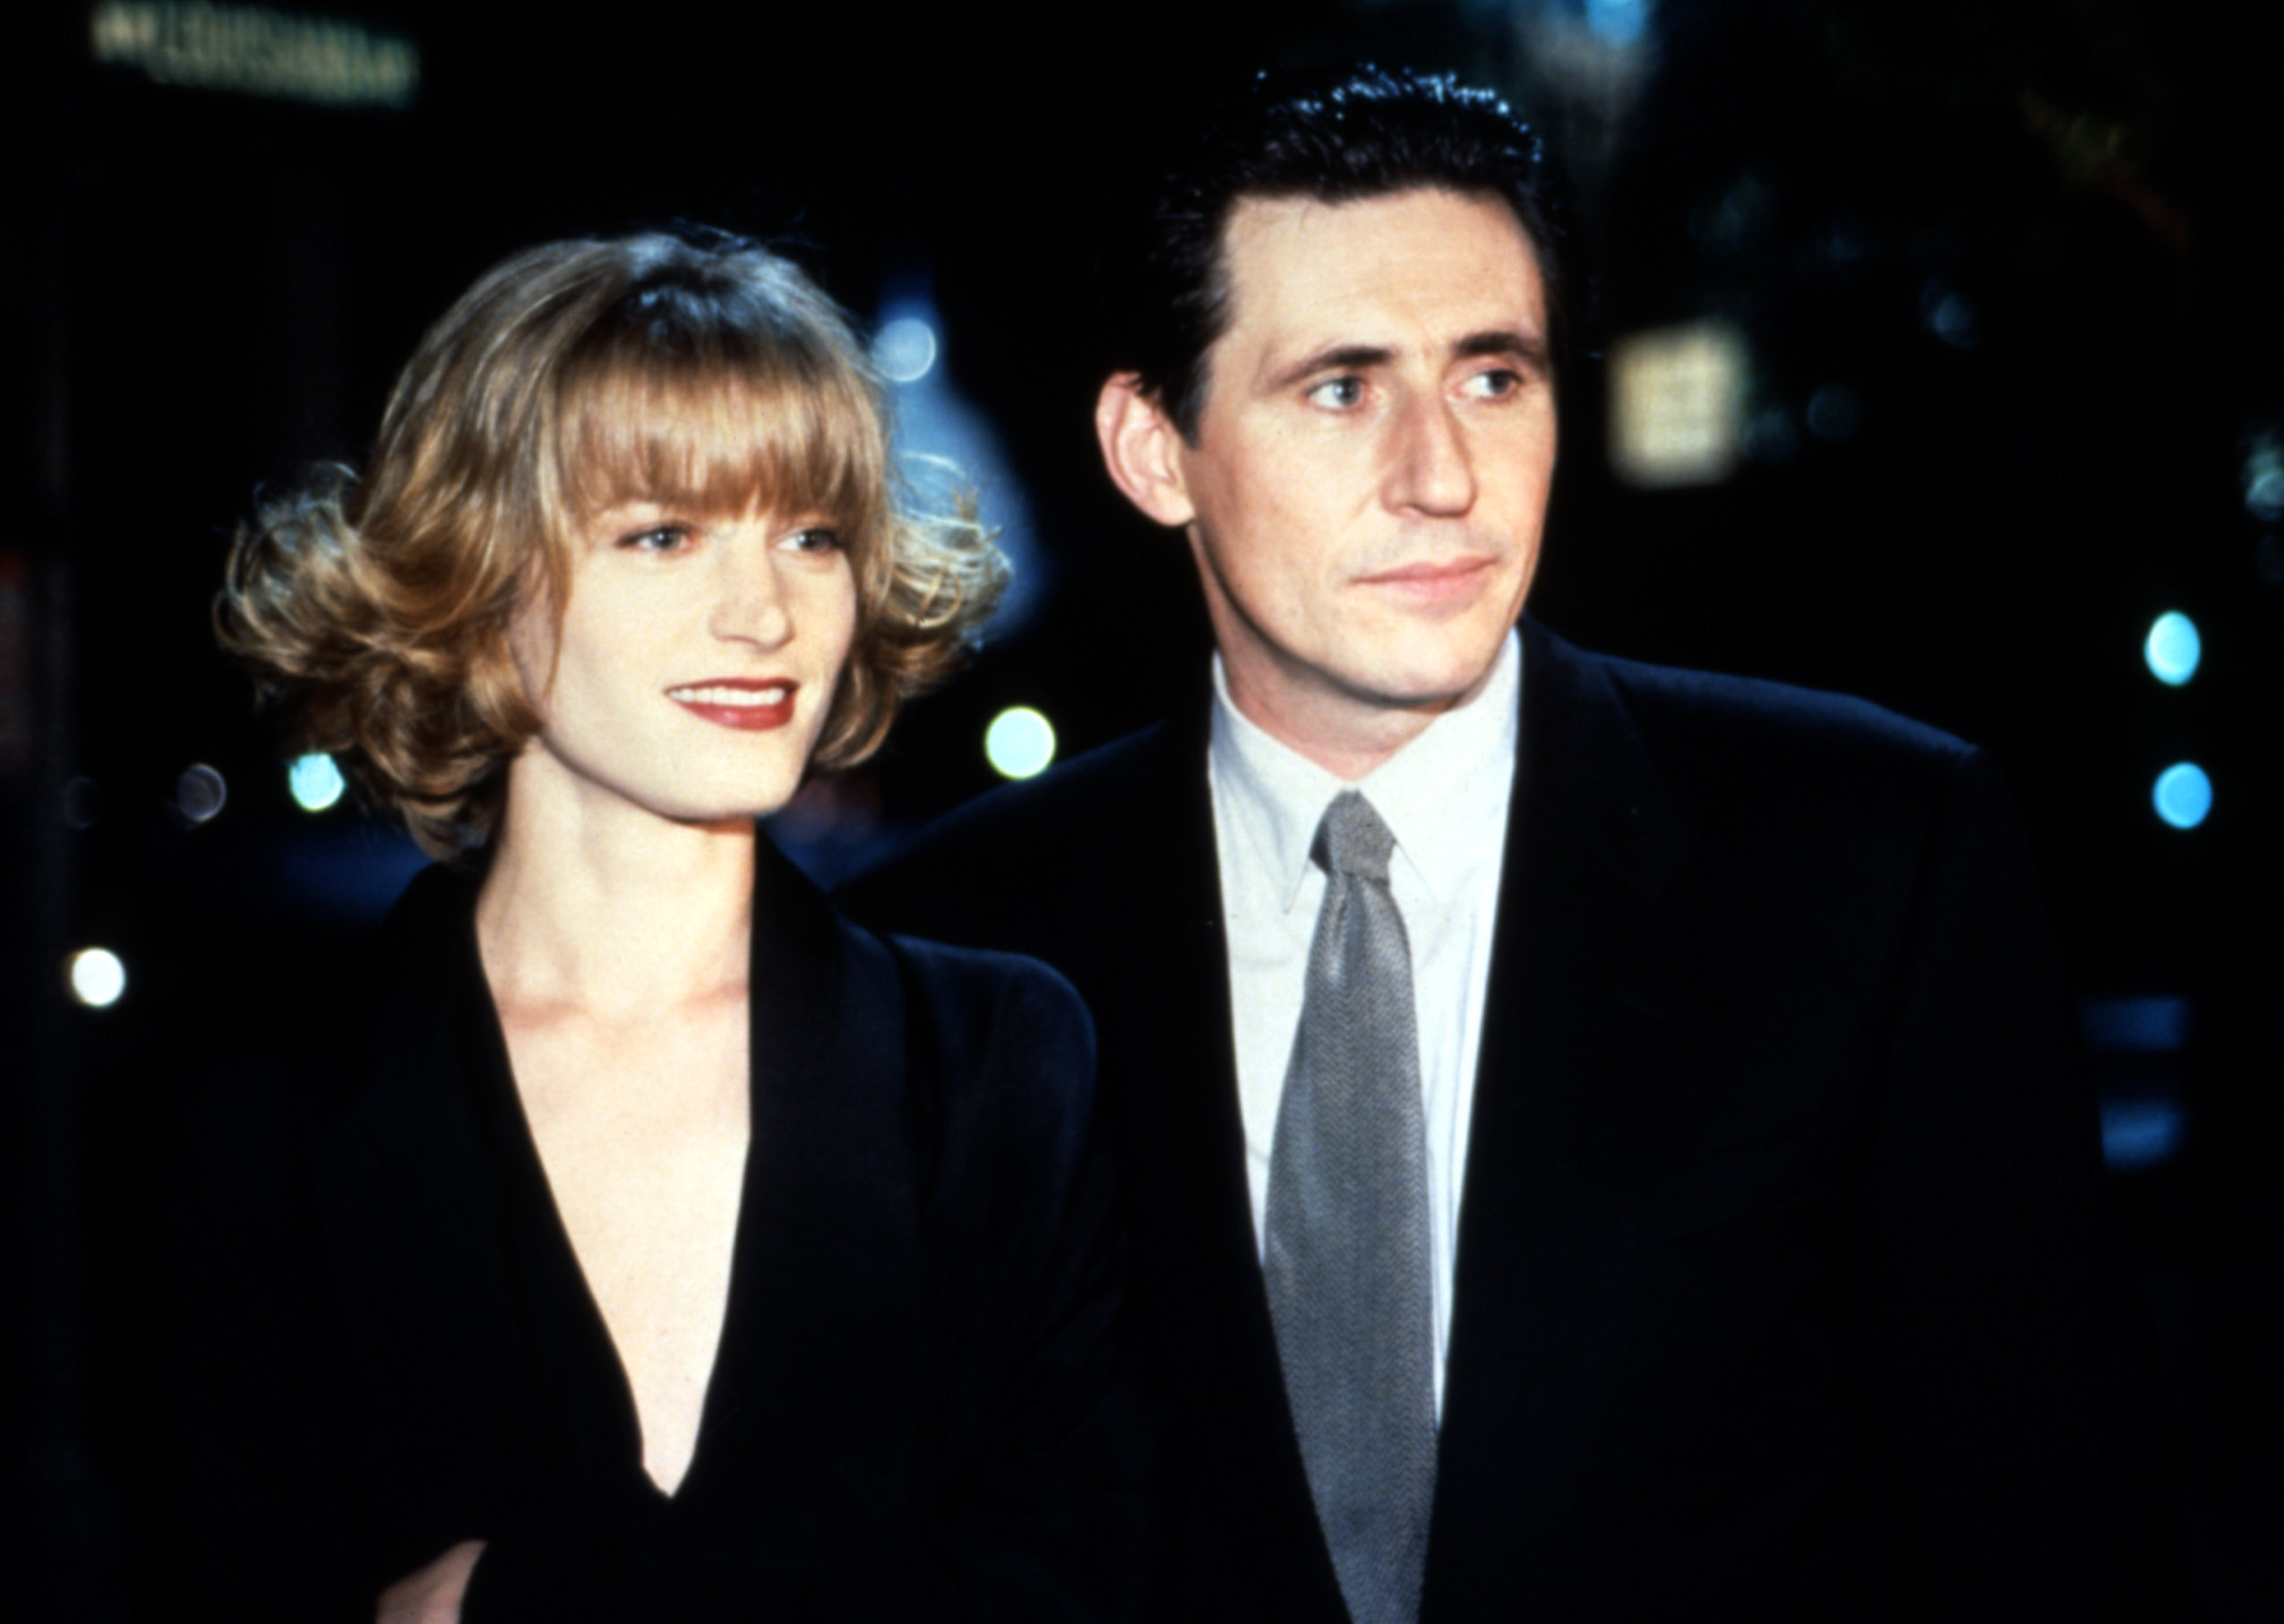 POINT OF NO RETURN, Bridget Fonda, Gabriel Byrne, 1993, (c)Warner Bros.